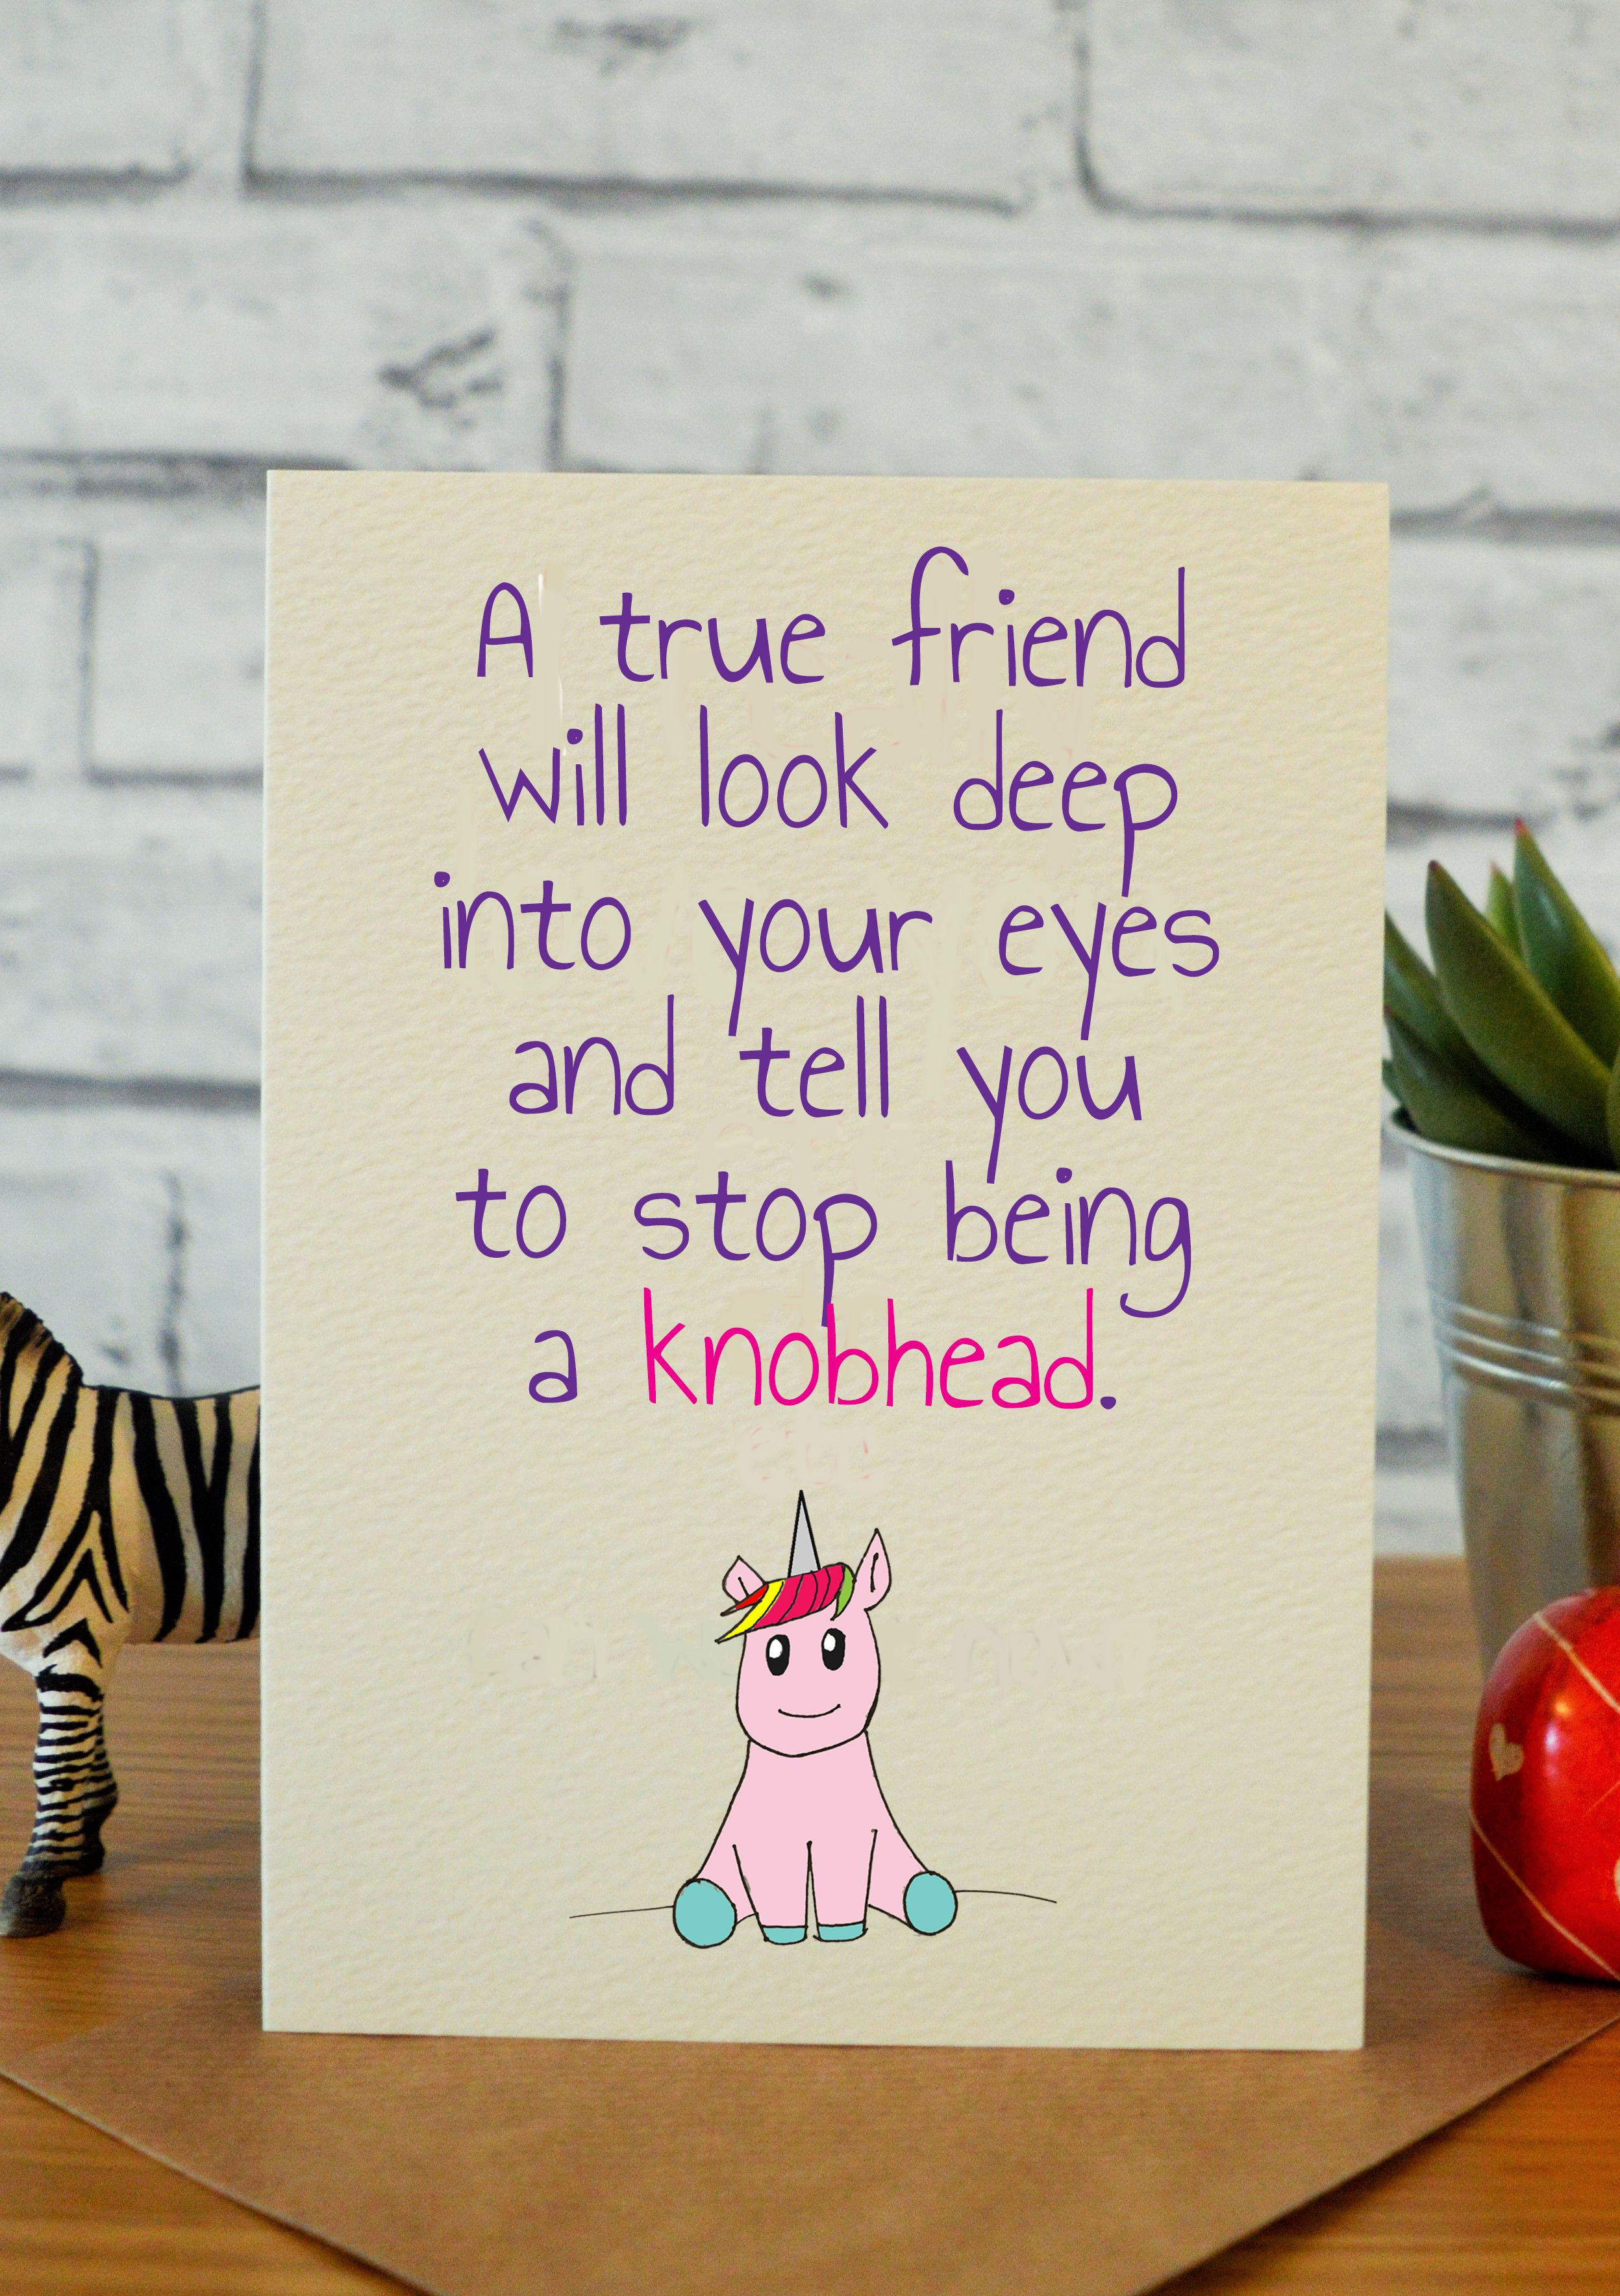 Best Friend Birthday Cards Gifts Unicorn Gift Ideas Handmade Hilarious